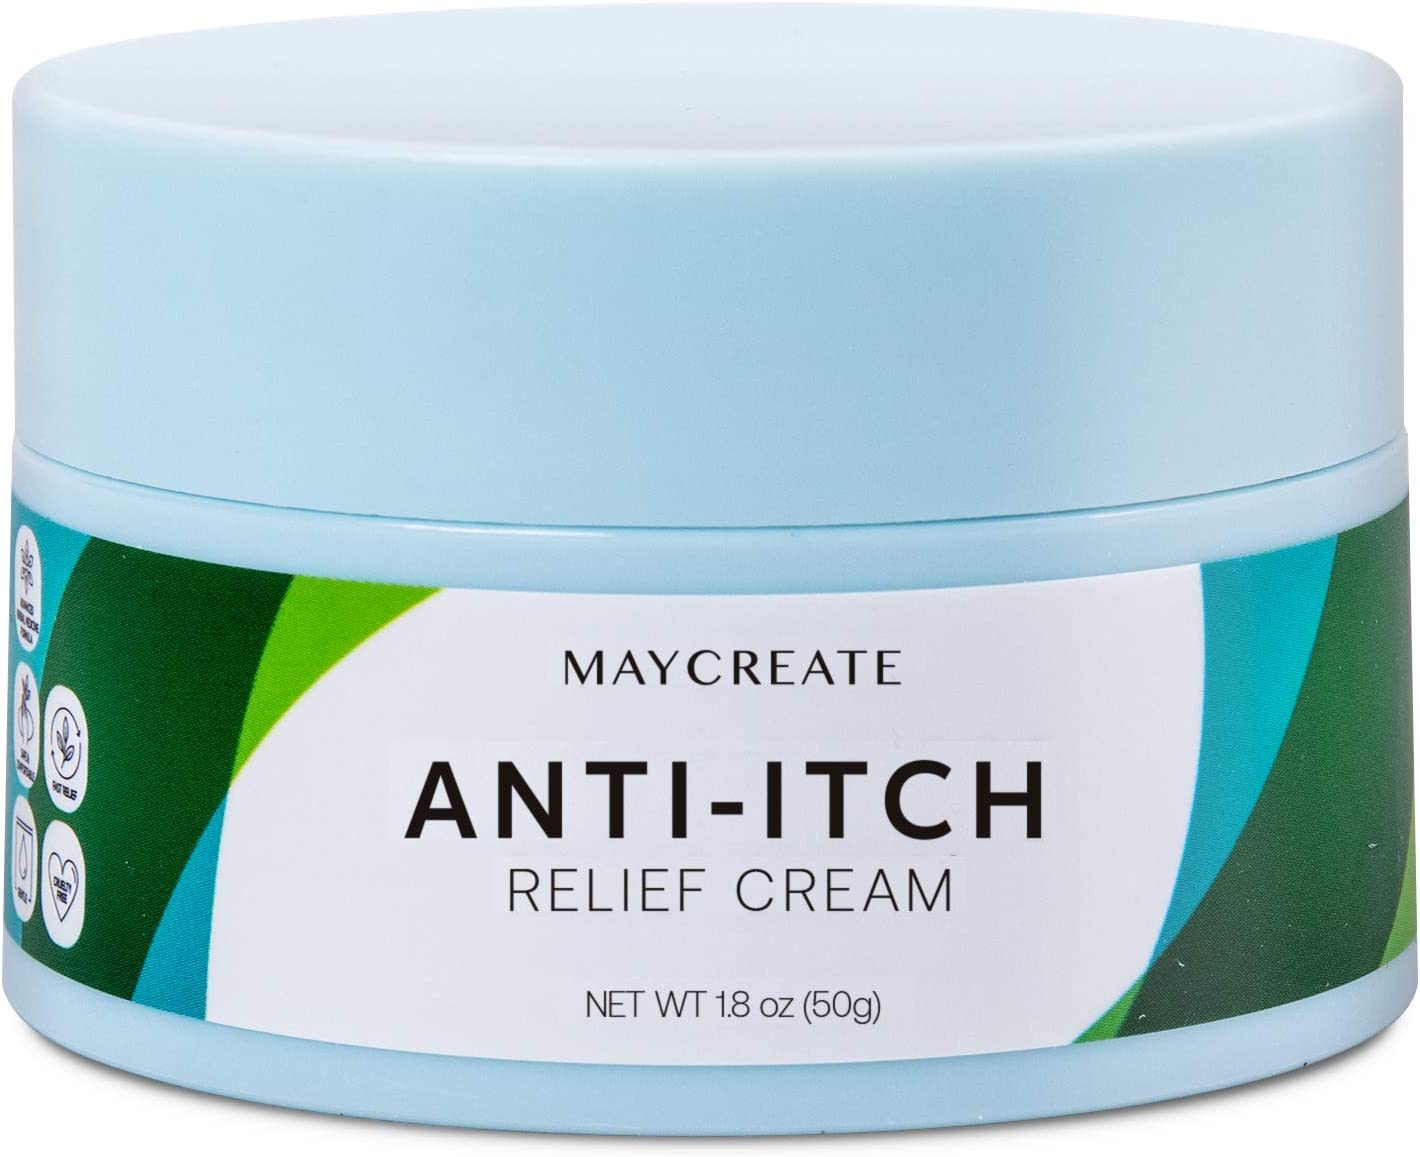 Maycreate Anti-Itch Cream Maximum Strength - Natural, Herbal Ingredients - Moisturizes & Nourishes